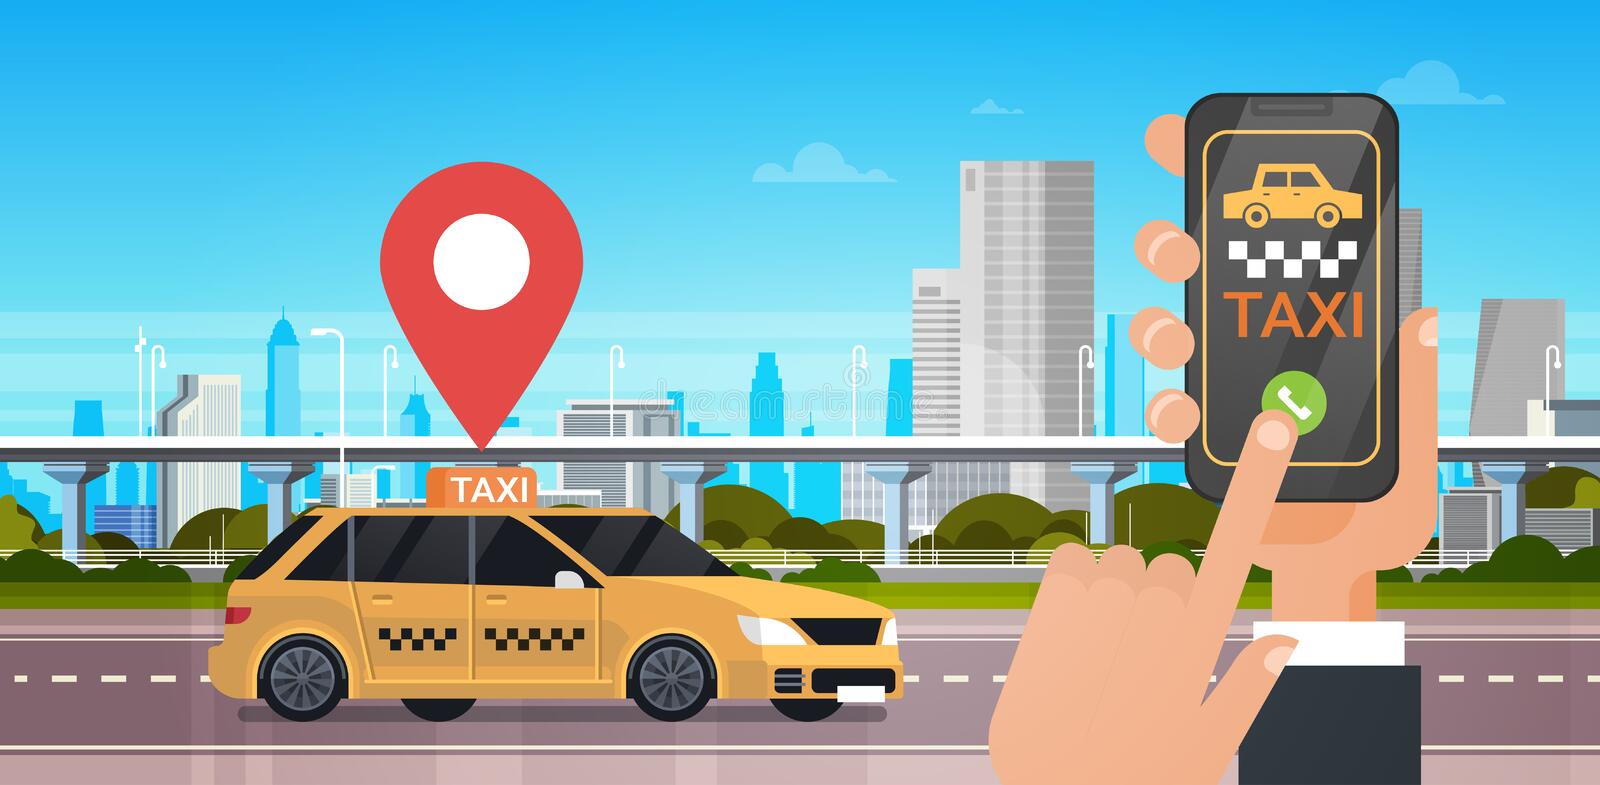 Taxi Service Online Application, Hand Holding Smart Phone Order Cab With Mobile App Over City Background. Flat Vector Illustration stock illustration